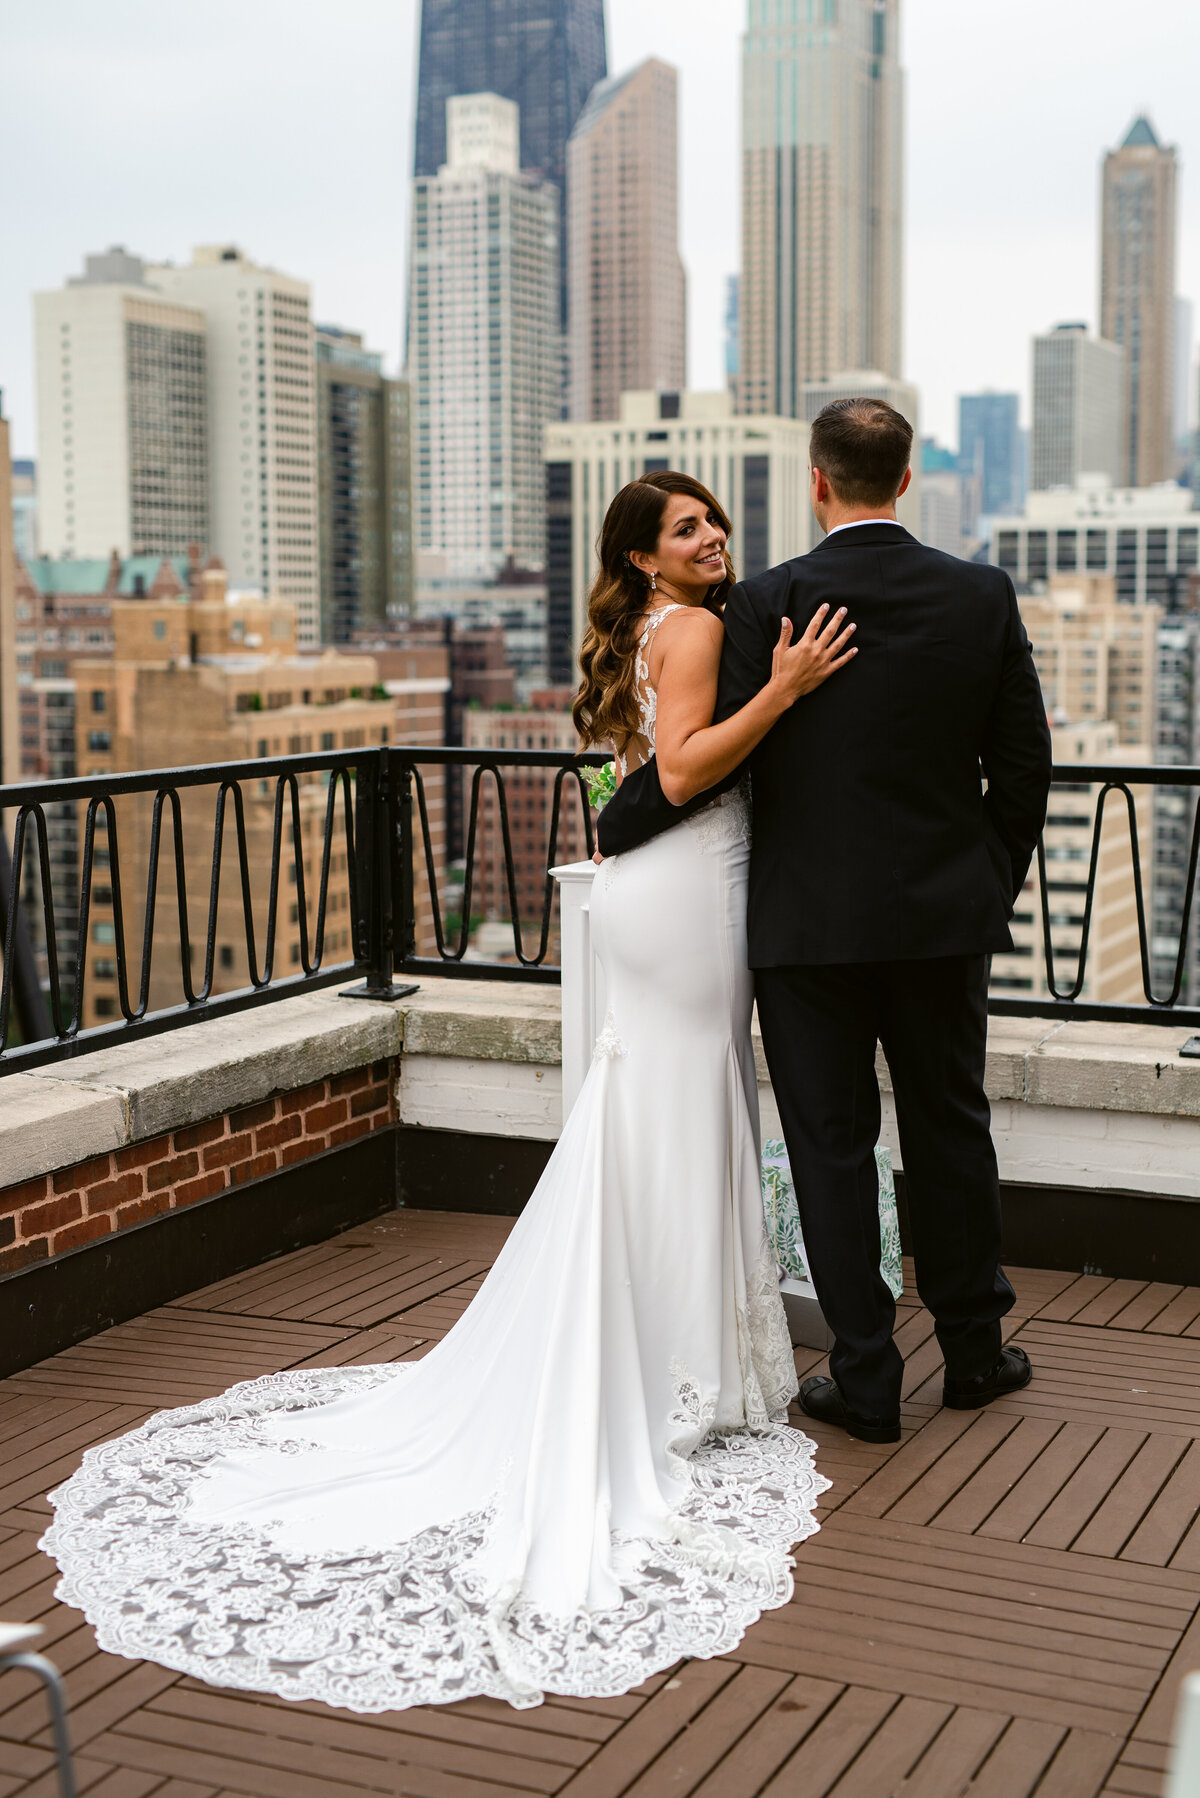 Bride and Groom standing on top of Ambassador Hotel in Chicago. Bride is looking back at photographer, while Groom overlooks the cityscape.